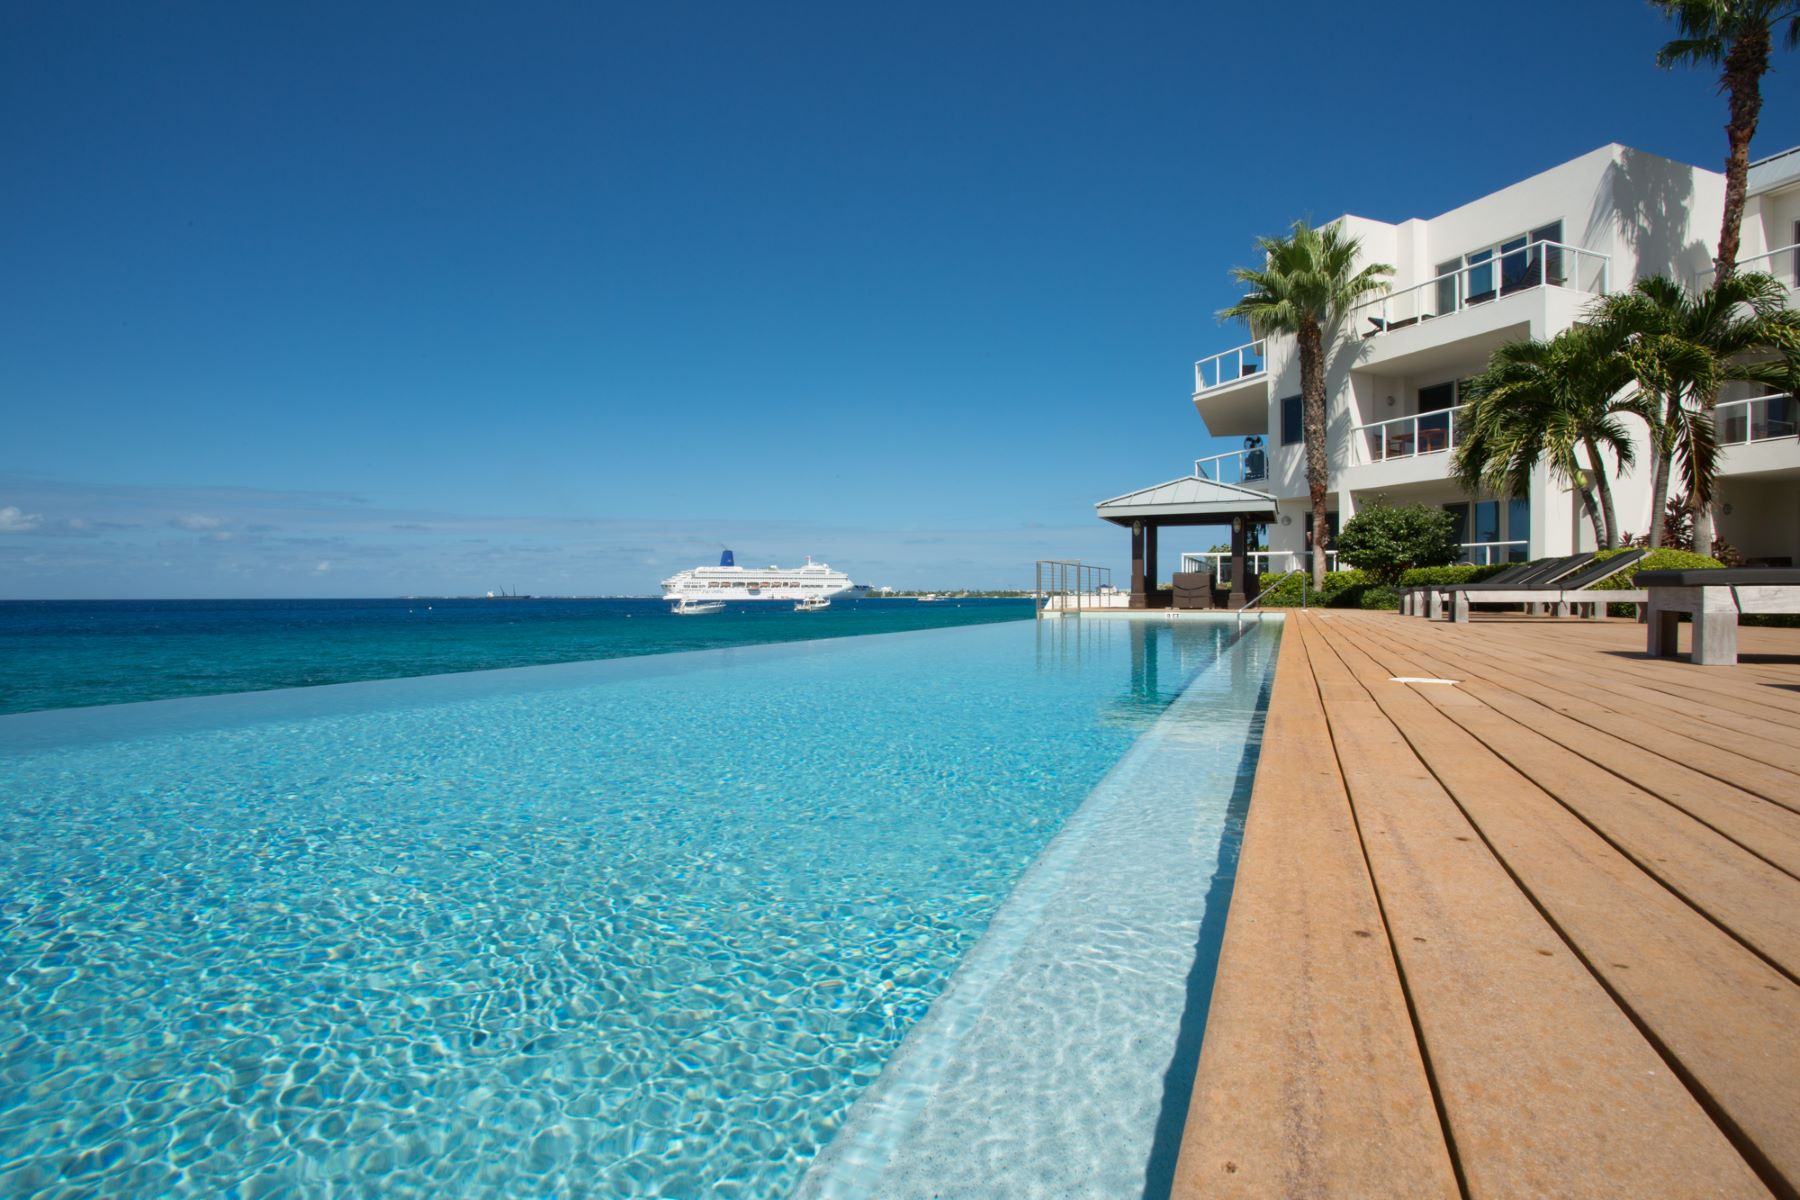 Condominium for Sale at SeaView Residences SeaView Residences 102 S Church St George Town, Grand Cayman, KY1 Cayman Islands